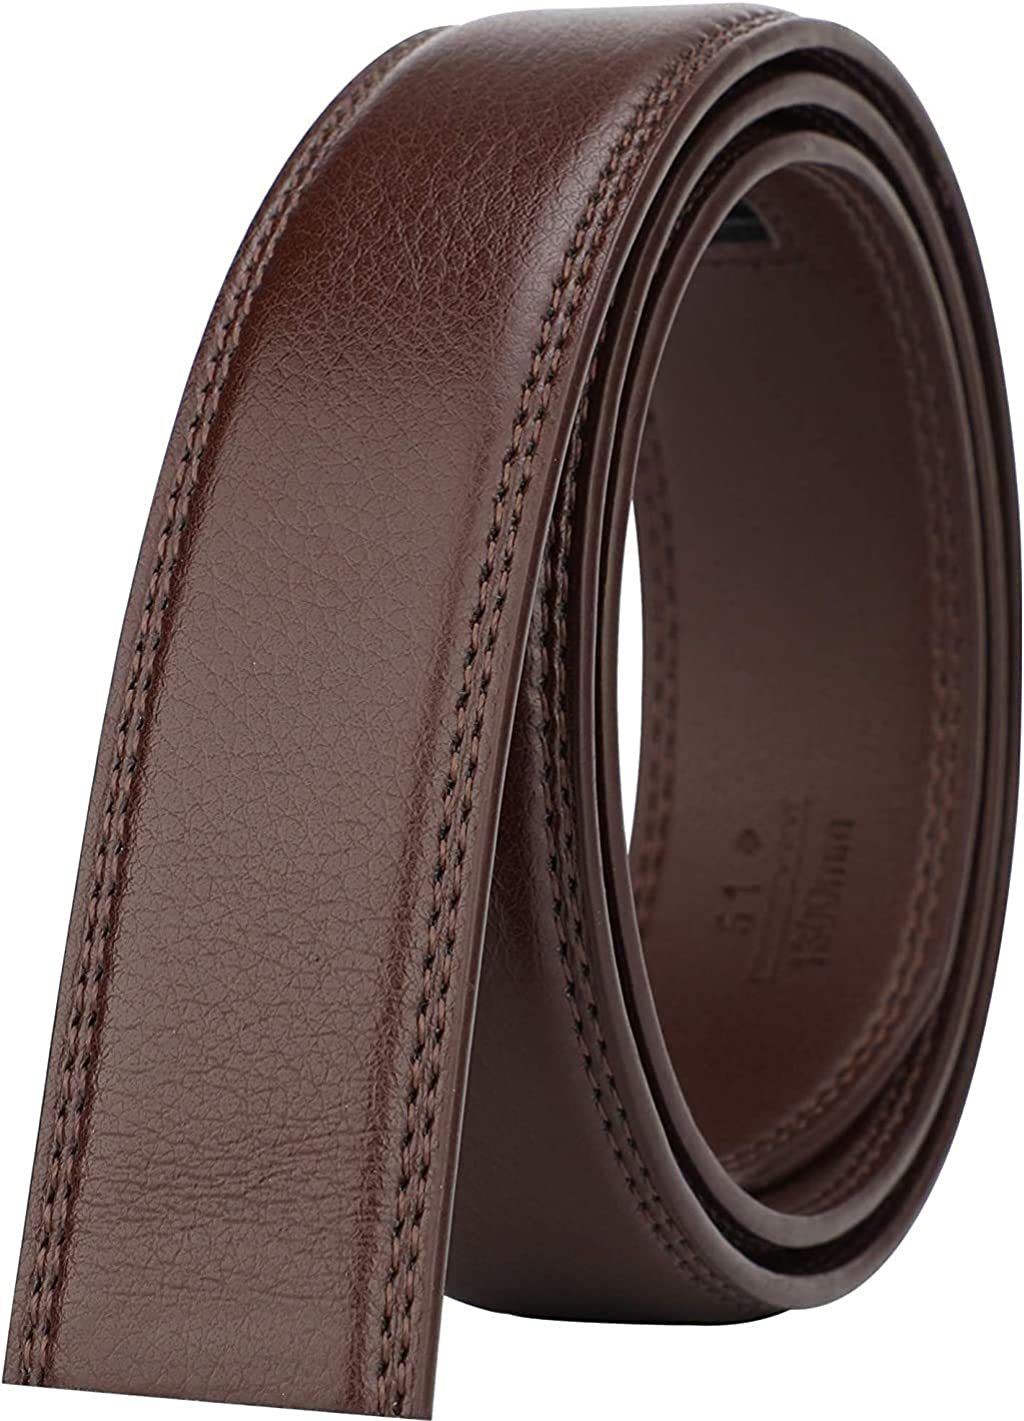 Lavemi Replacement Belt Strap for 3 1 8